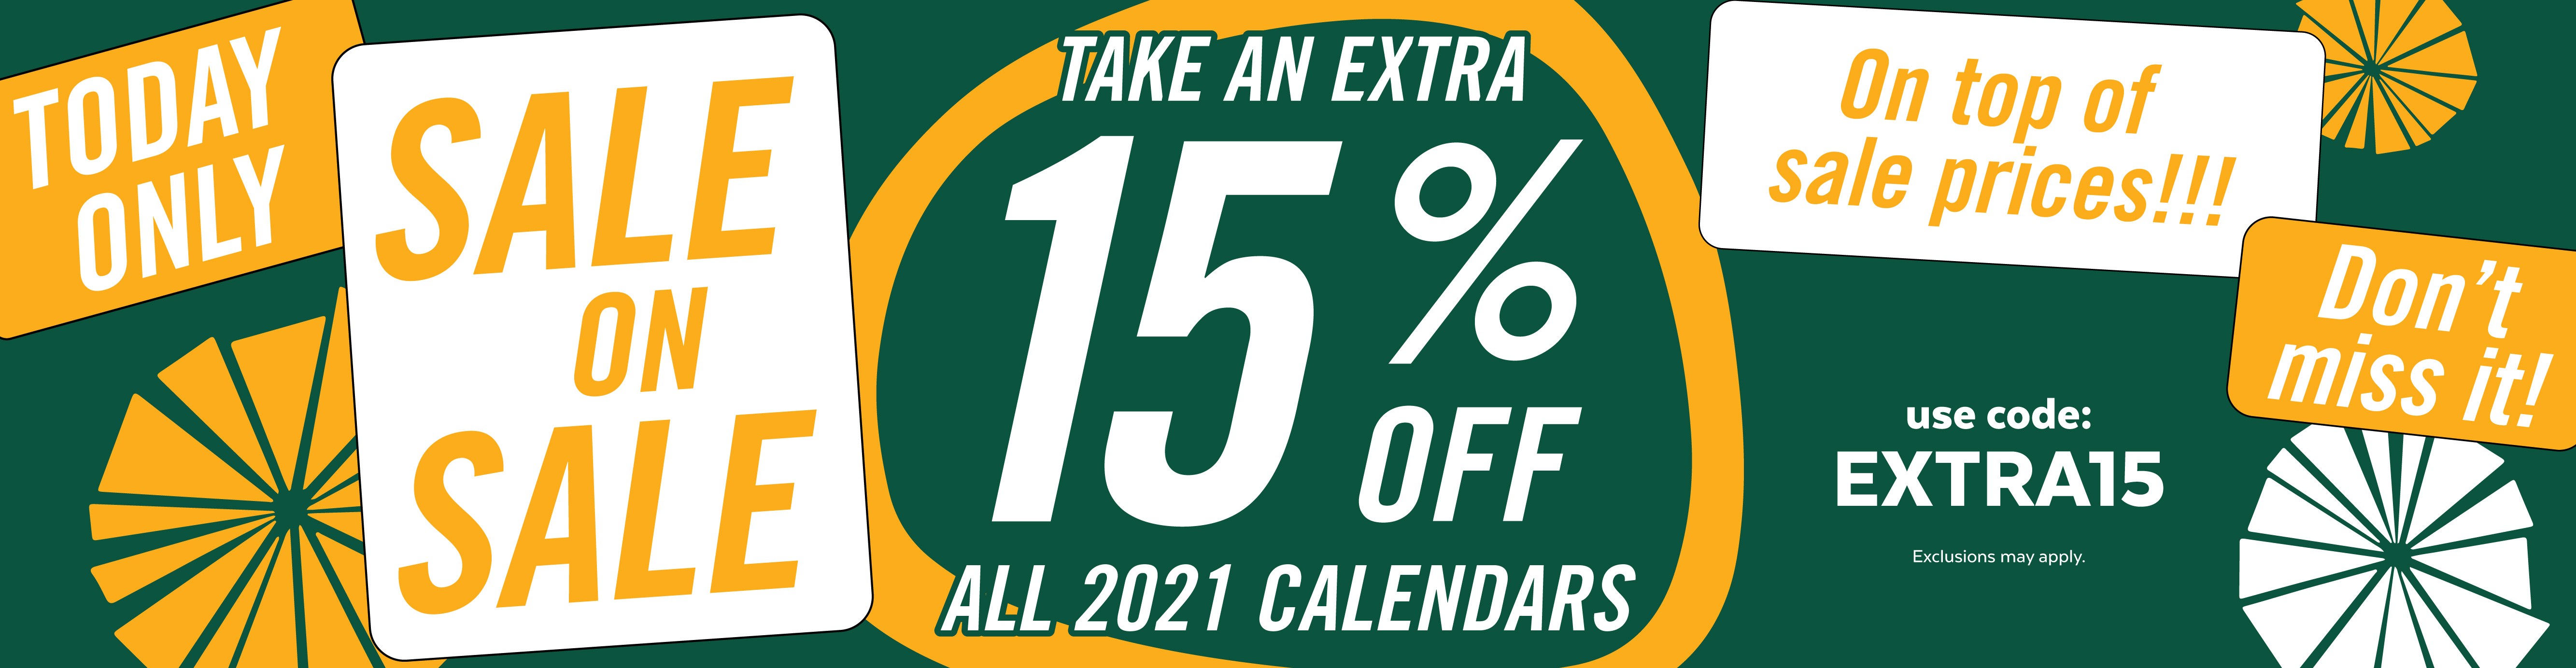 Sale on Sale! Take an Extra 15% Off All 2021 Calendars! Use Code EXTRA15